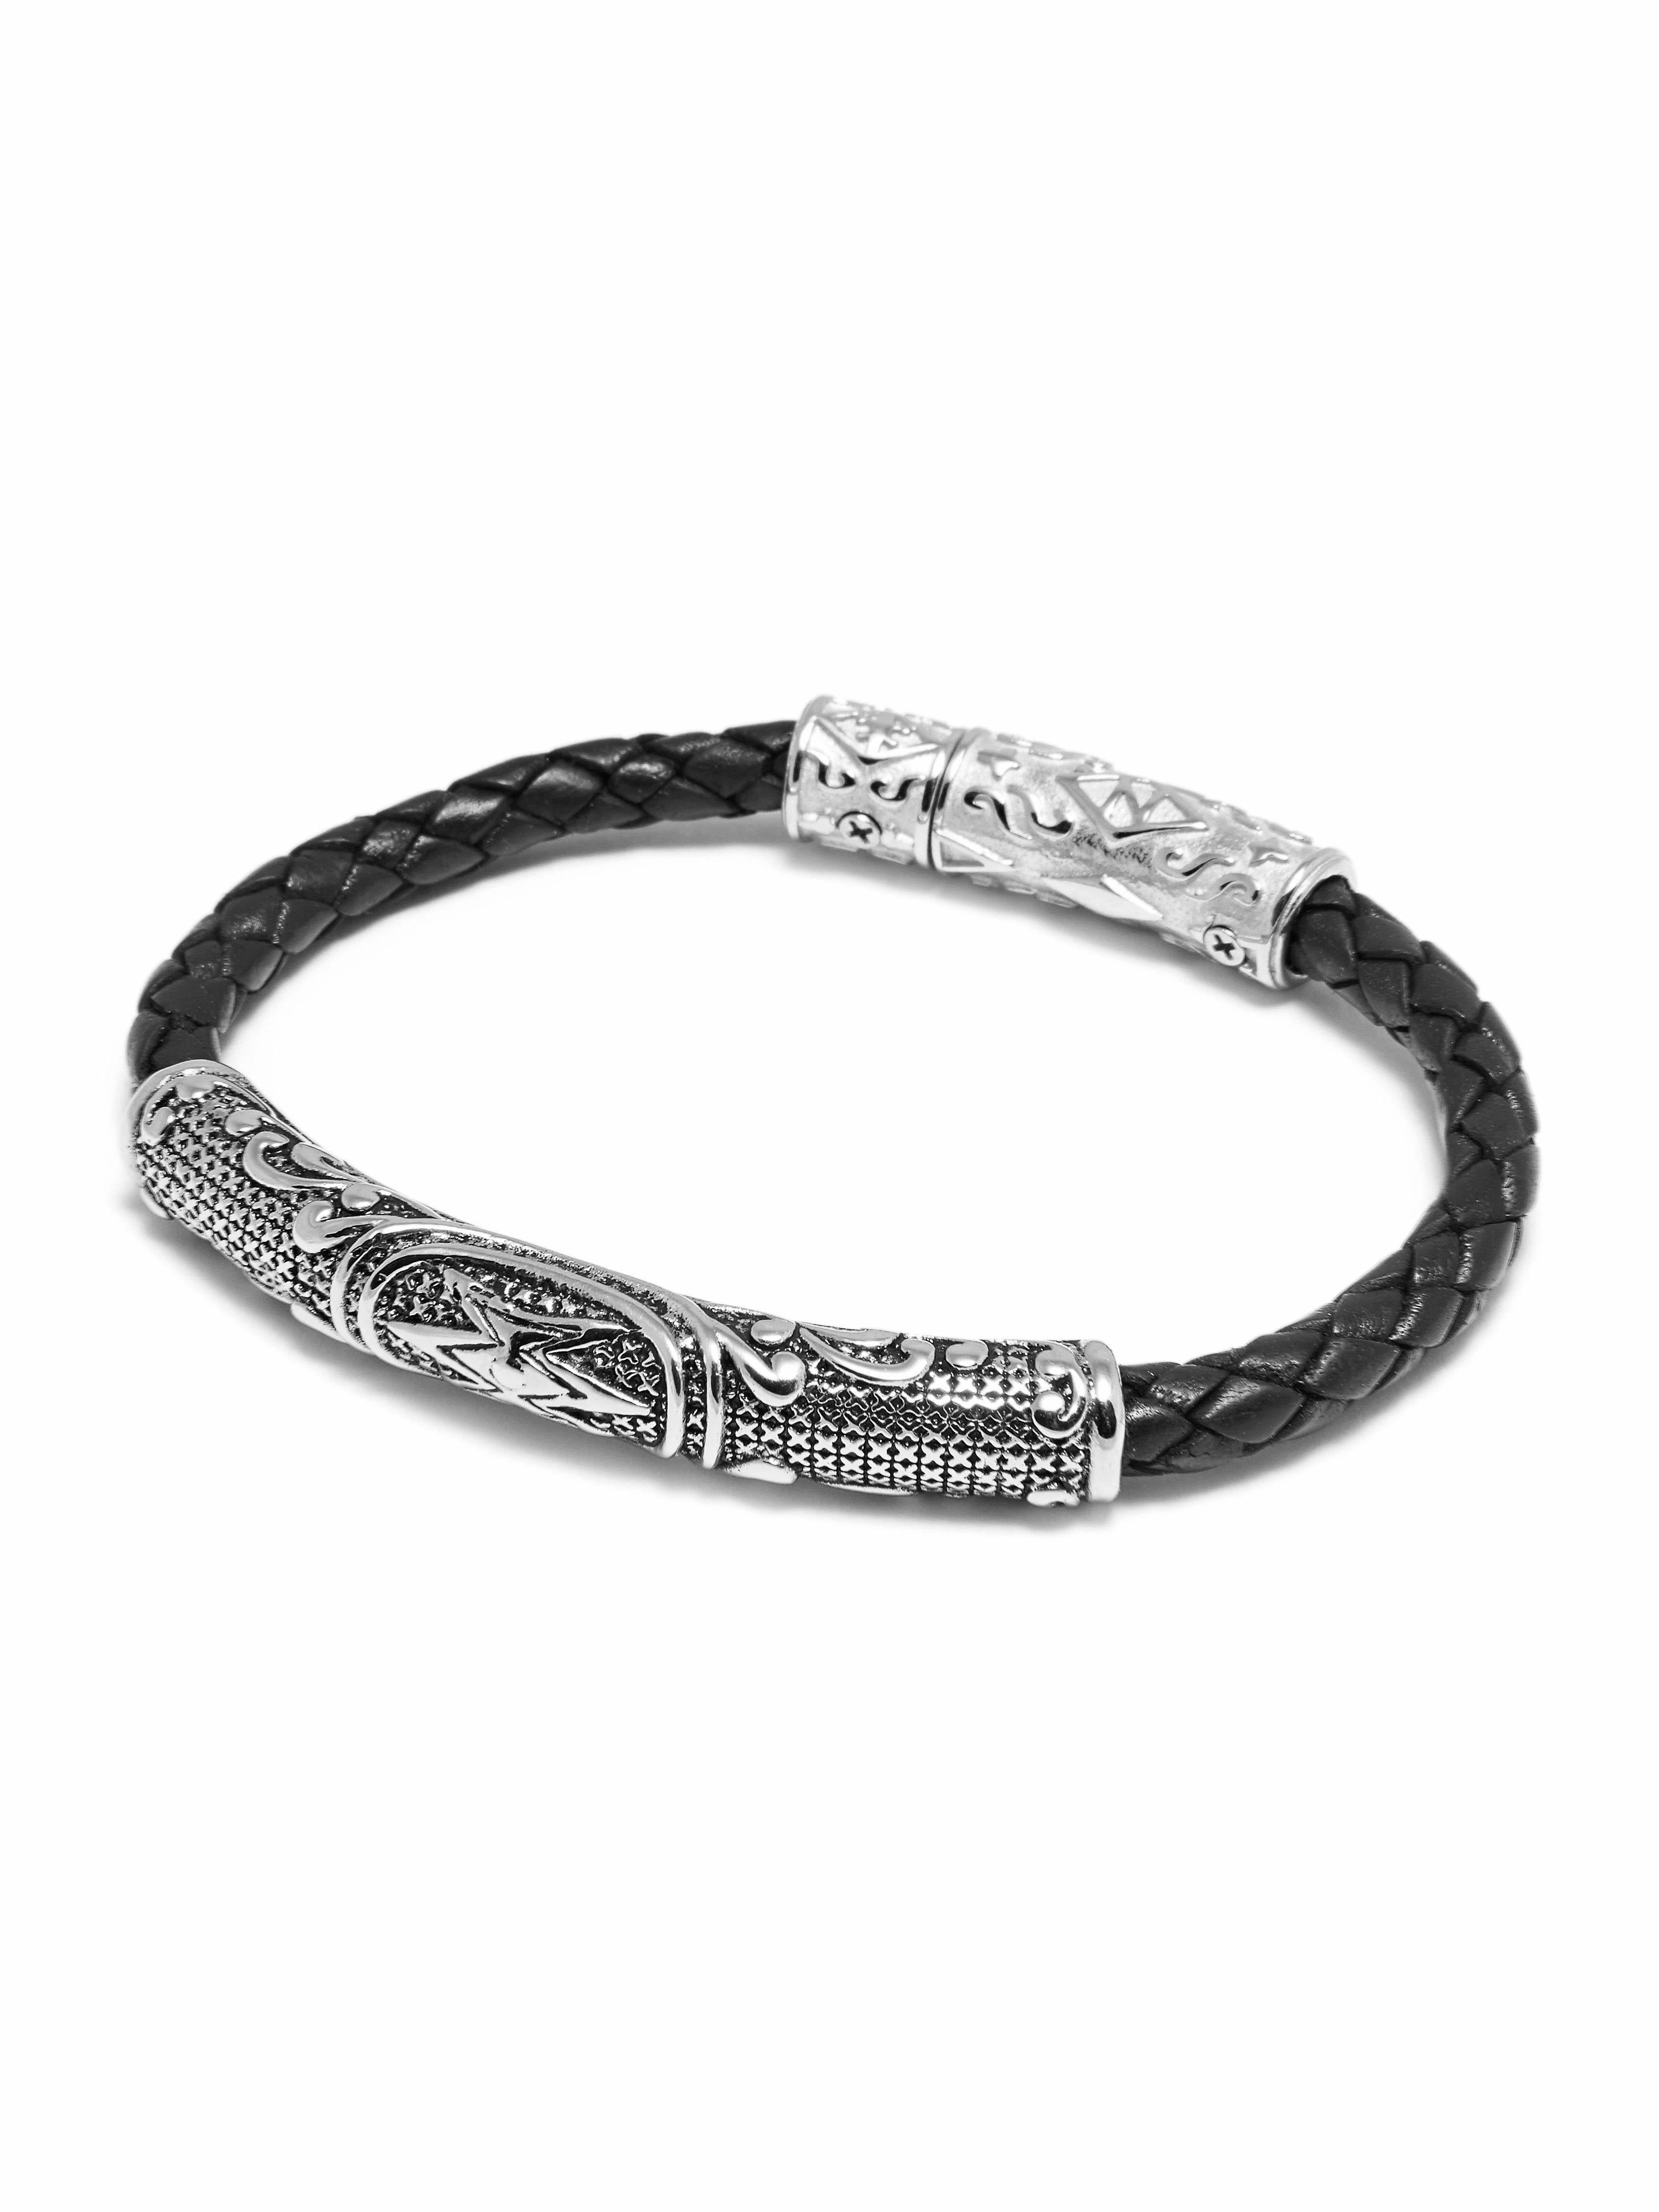 Men's Black Braided Leather with Silver Accent